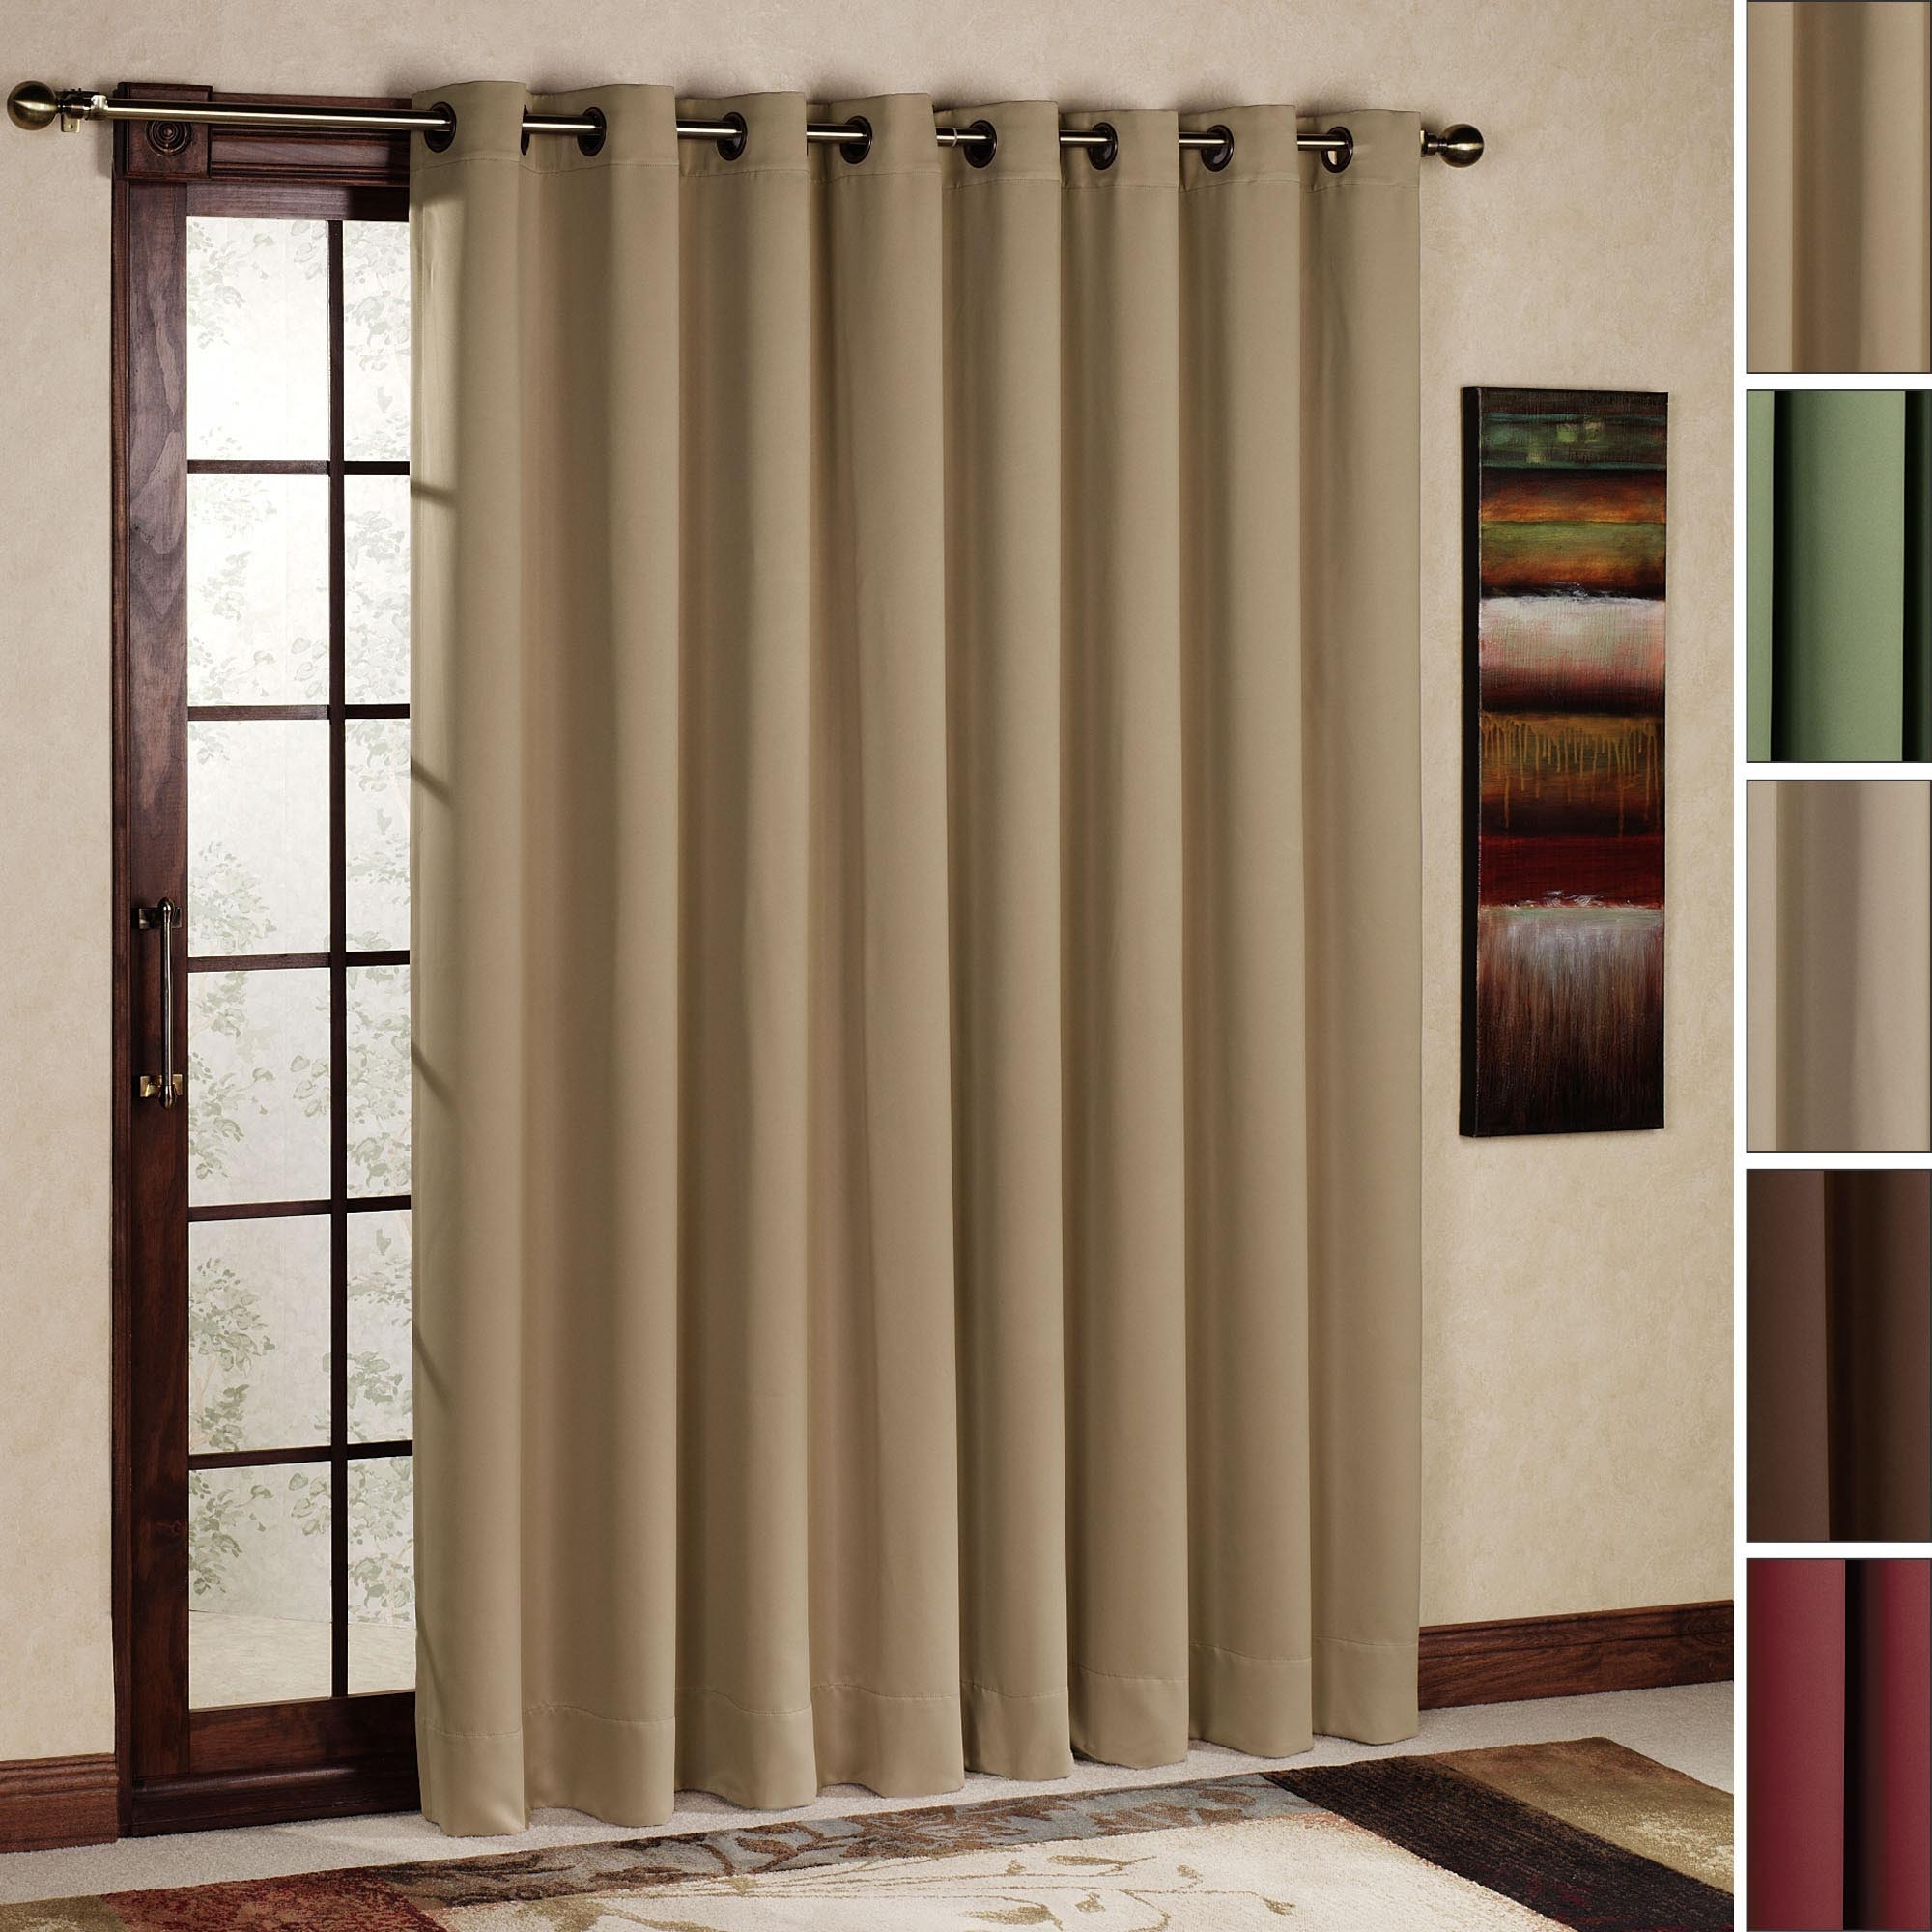 Sliding Glass Door Curtains And Drapes Curtain Best Modern Single For Single Curtains For Doors (Image 14 of 15)